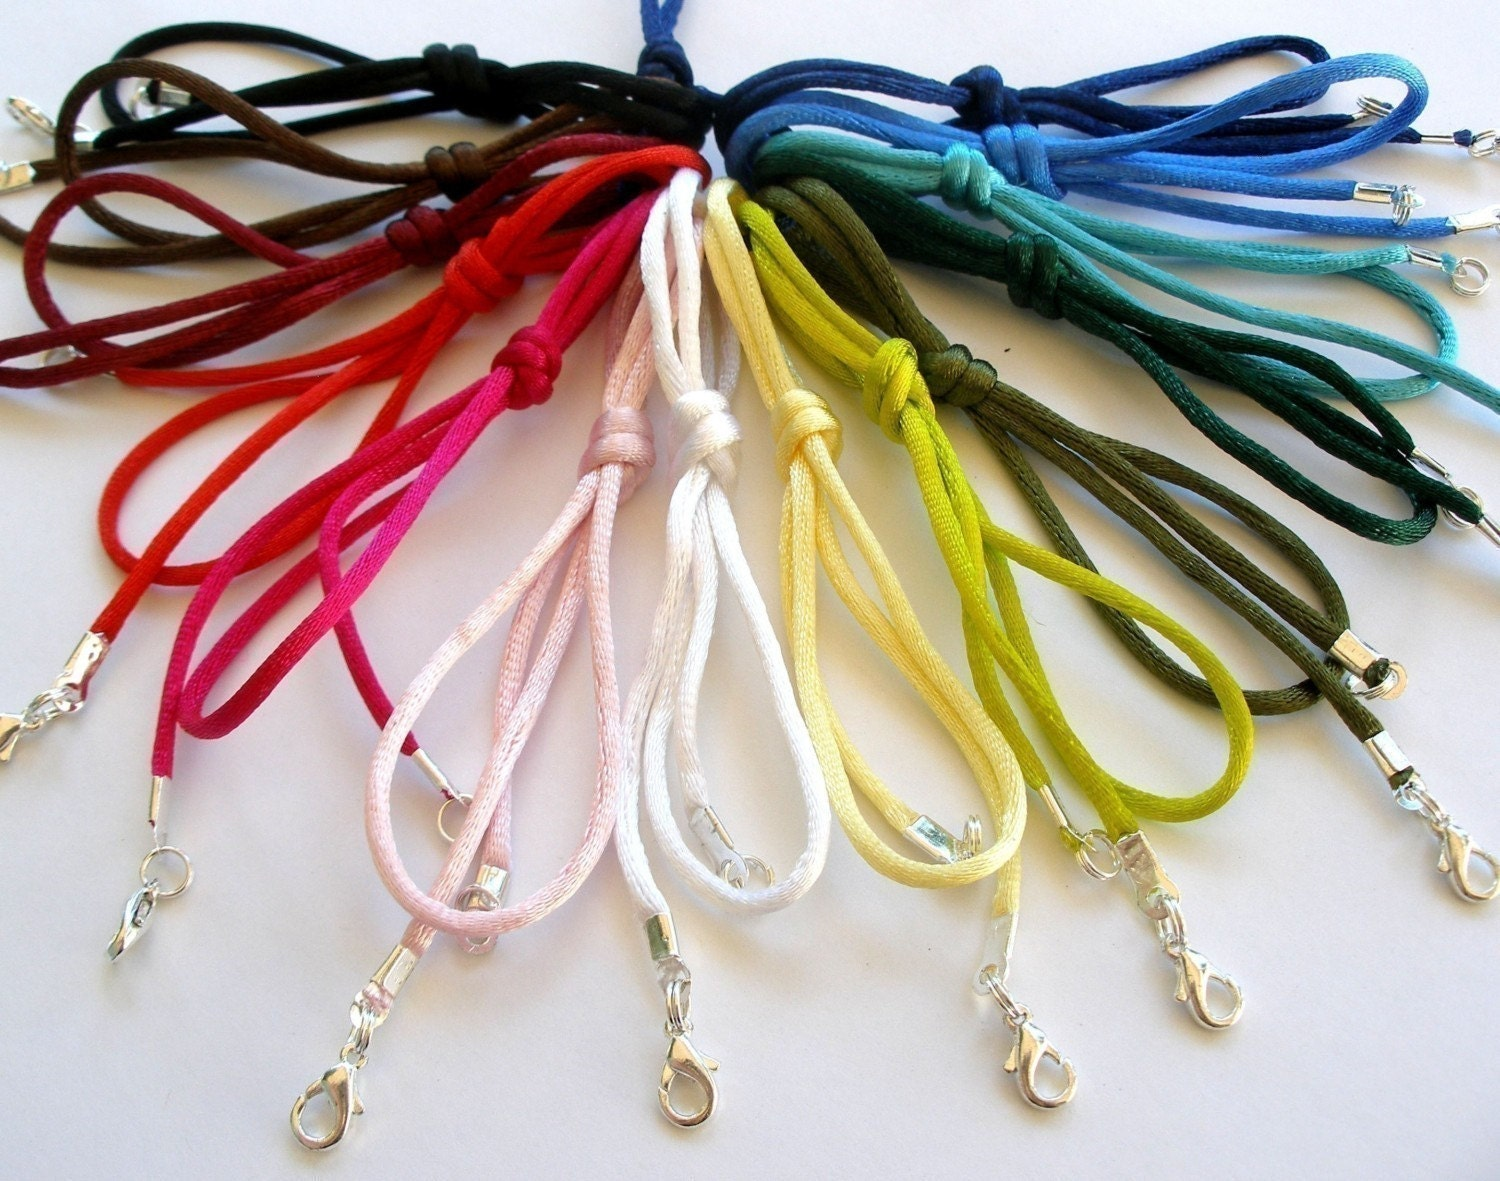 12pc Necklace Cords Rattail  Any Length, 21 Colors - Fits Scrabble/Glass Tile Pendants all Aanraku bails - Handmade in USA